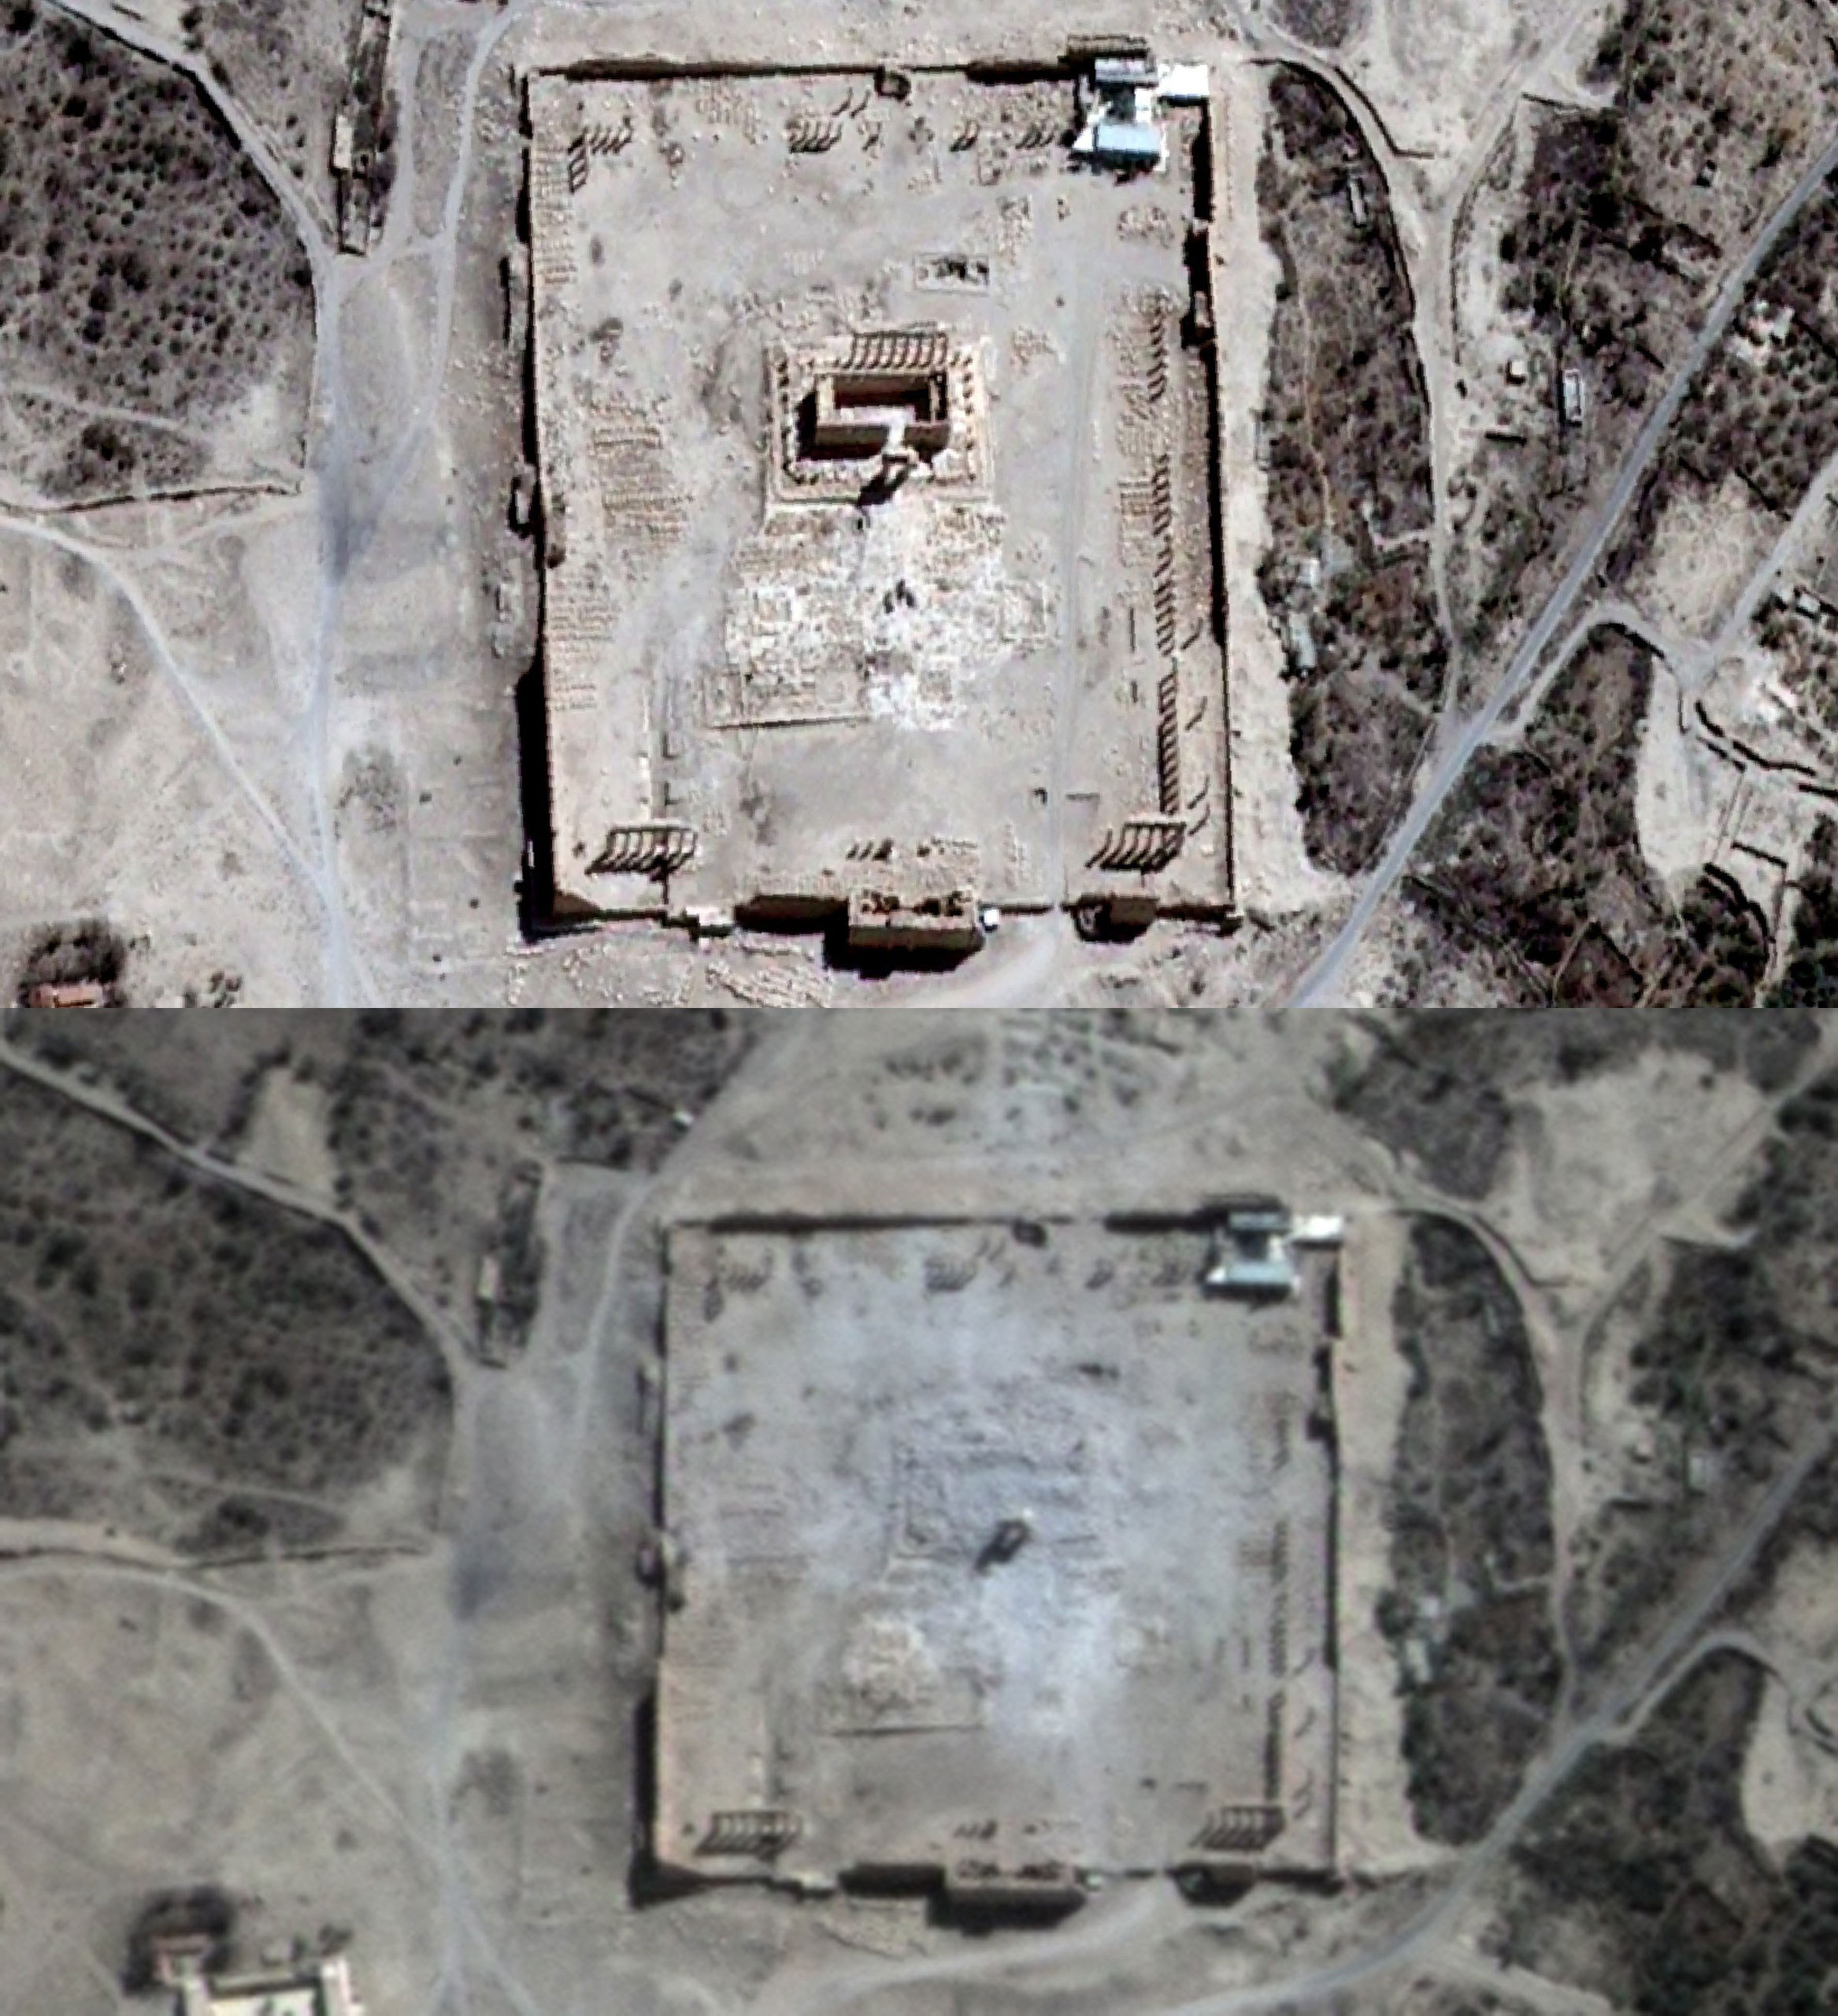 Top: A satellite image of the Temple of Bel seen in Syria's ancient city of Palmyra on Aug. 27, 2015; Bottom: A satellite image showing rubble at the temple's location on Aug. 31, 2015.